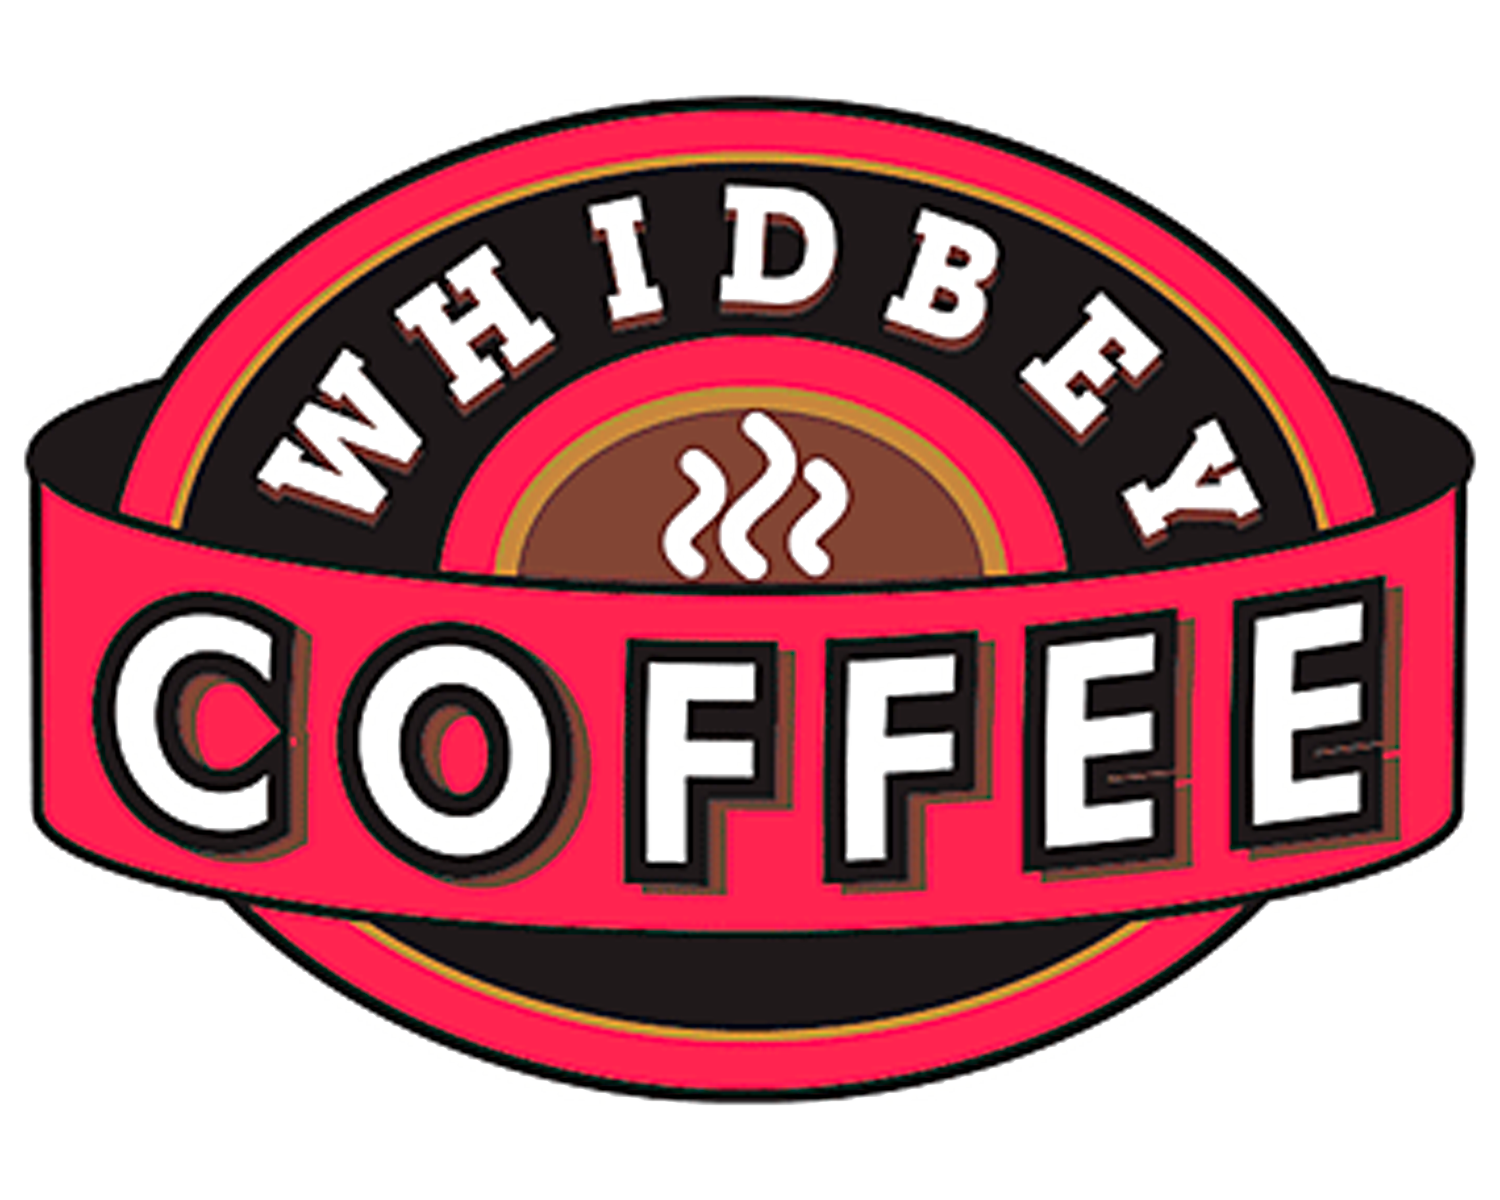 WHIDBEYCOFFEE.png